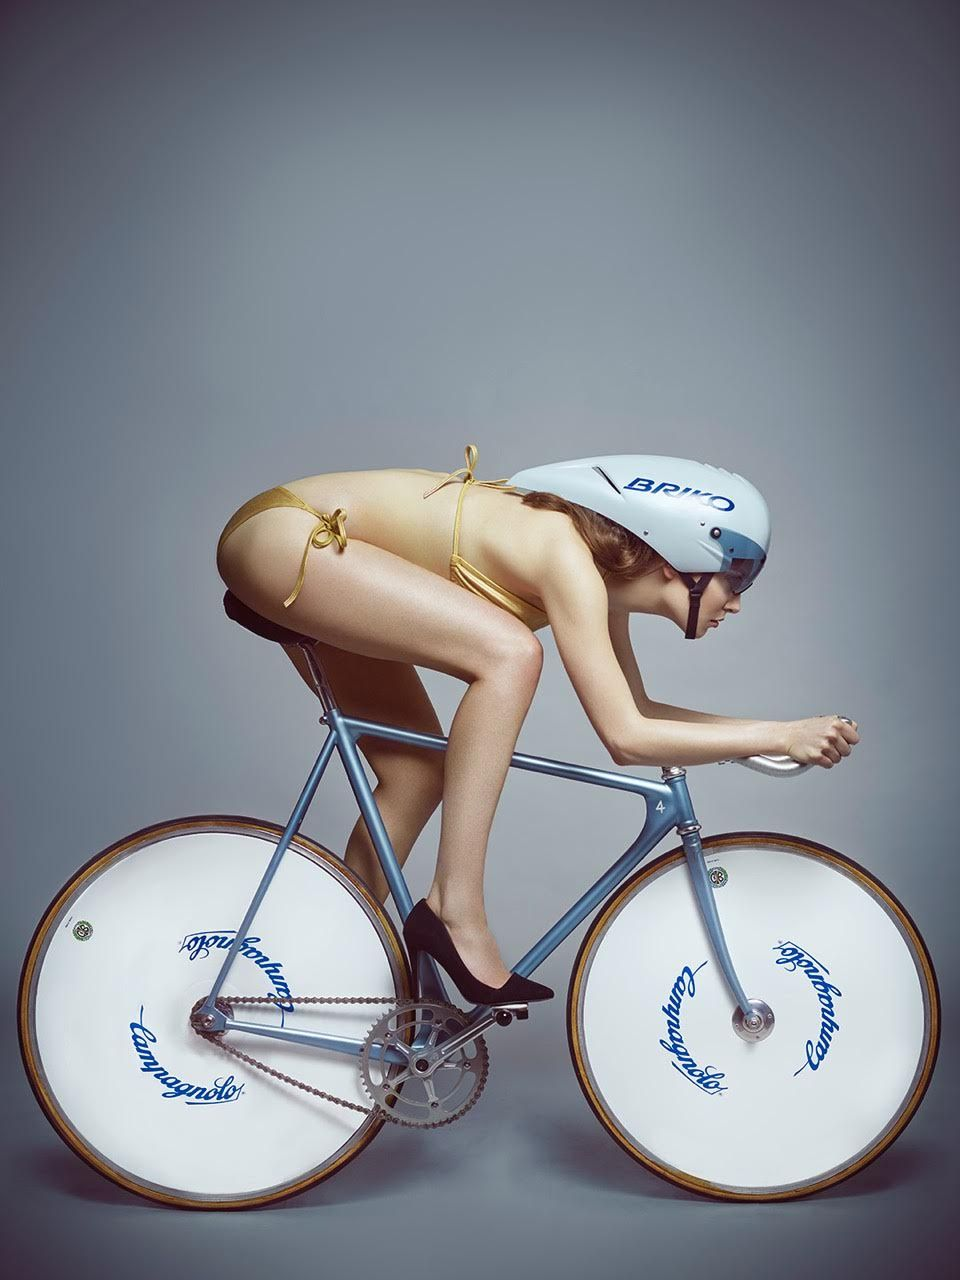 Naked cycle chick